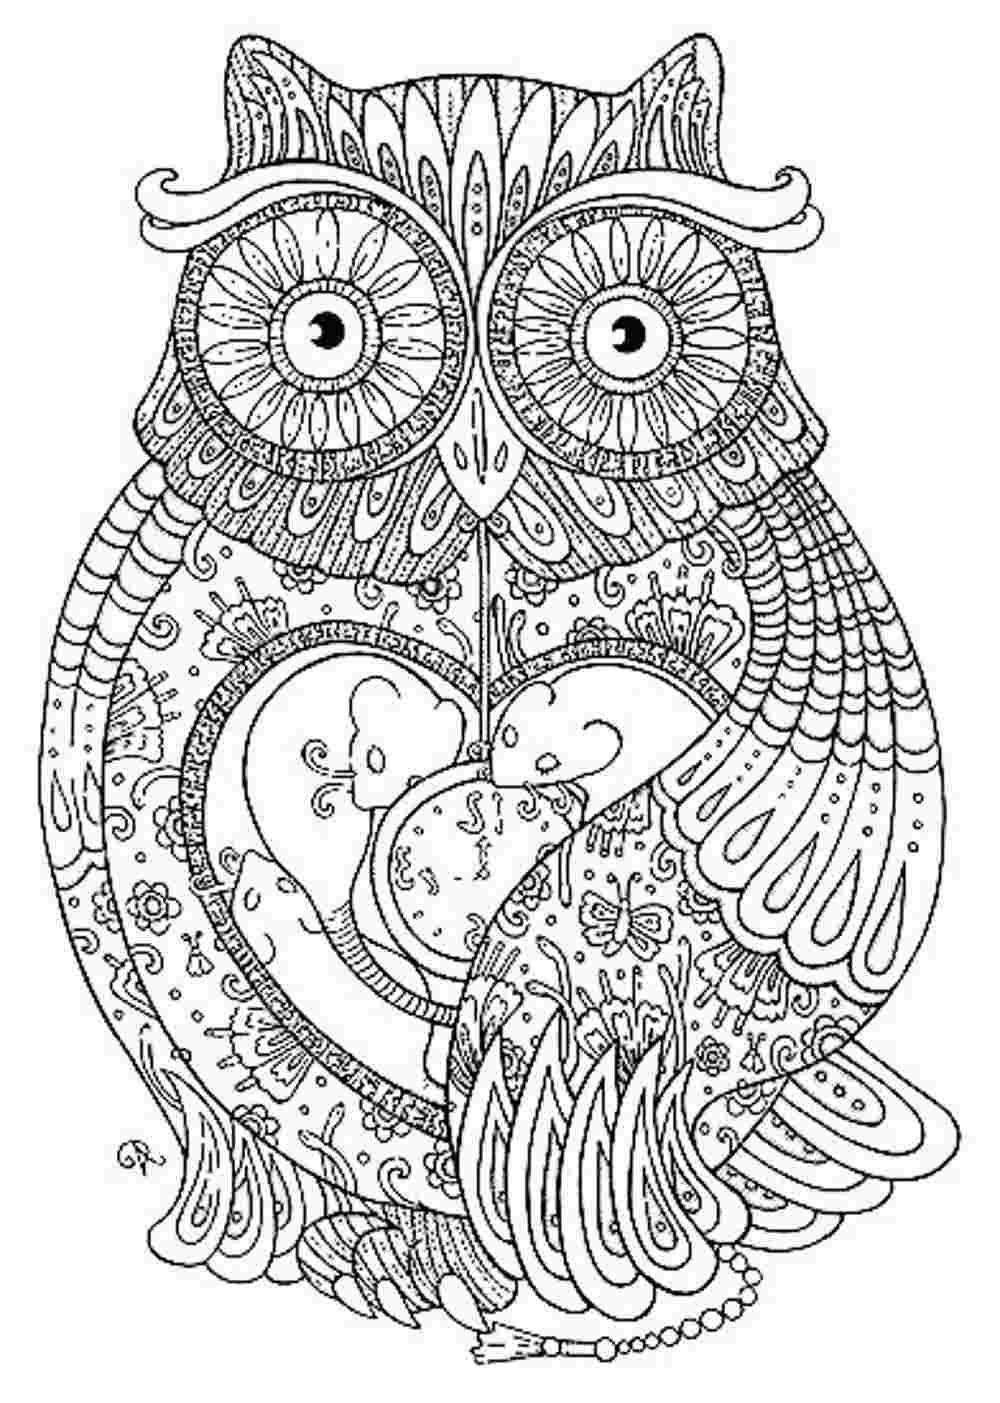 animal coloring pages for adults coloring pages printable and coloring book to print for free find more coloring pages online for kids and adults of animal